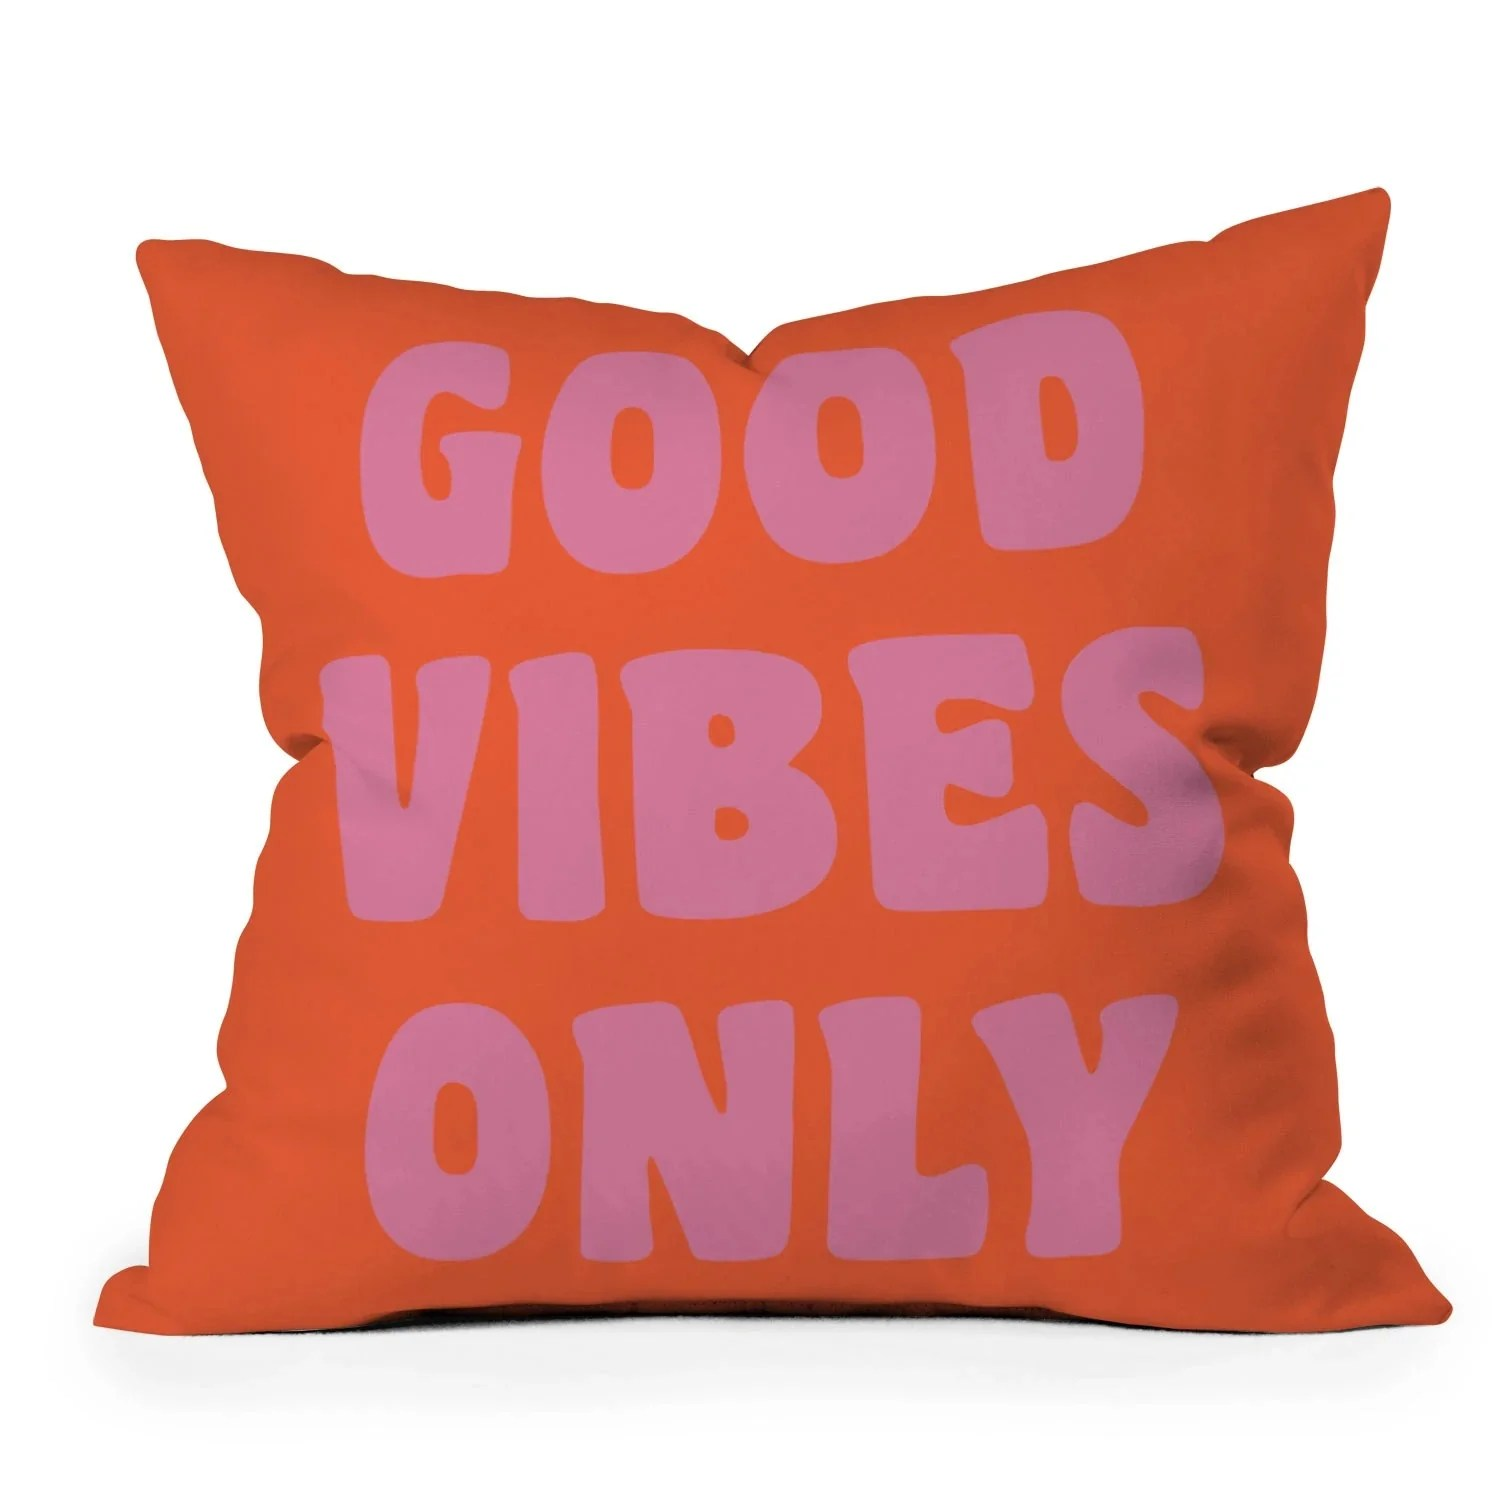 good vibes only pillow 16 x 16